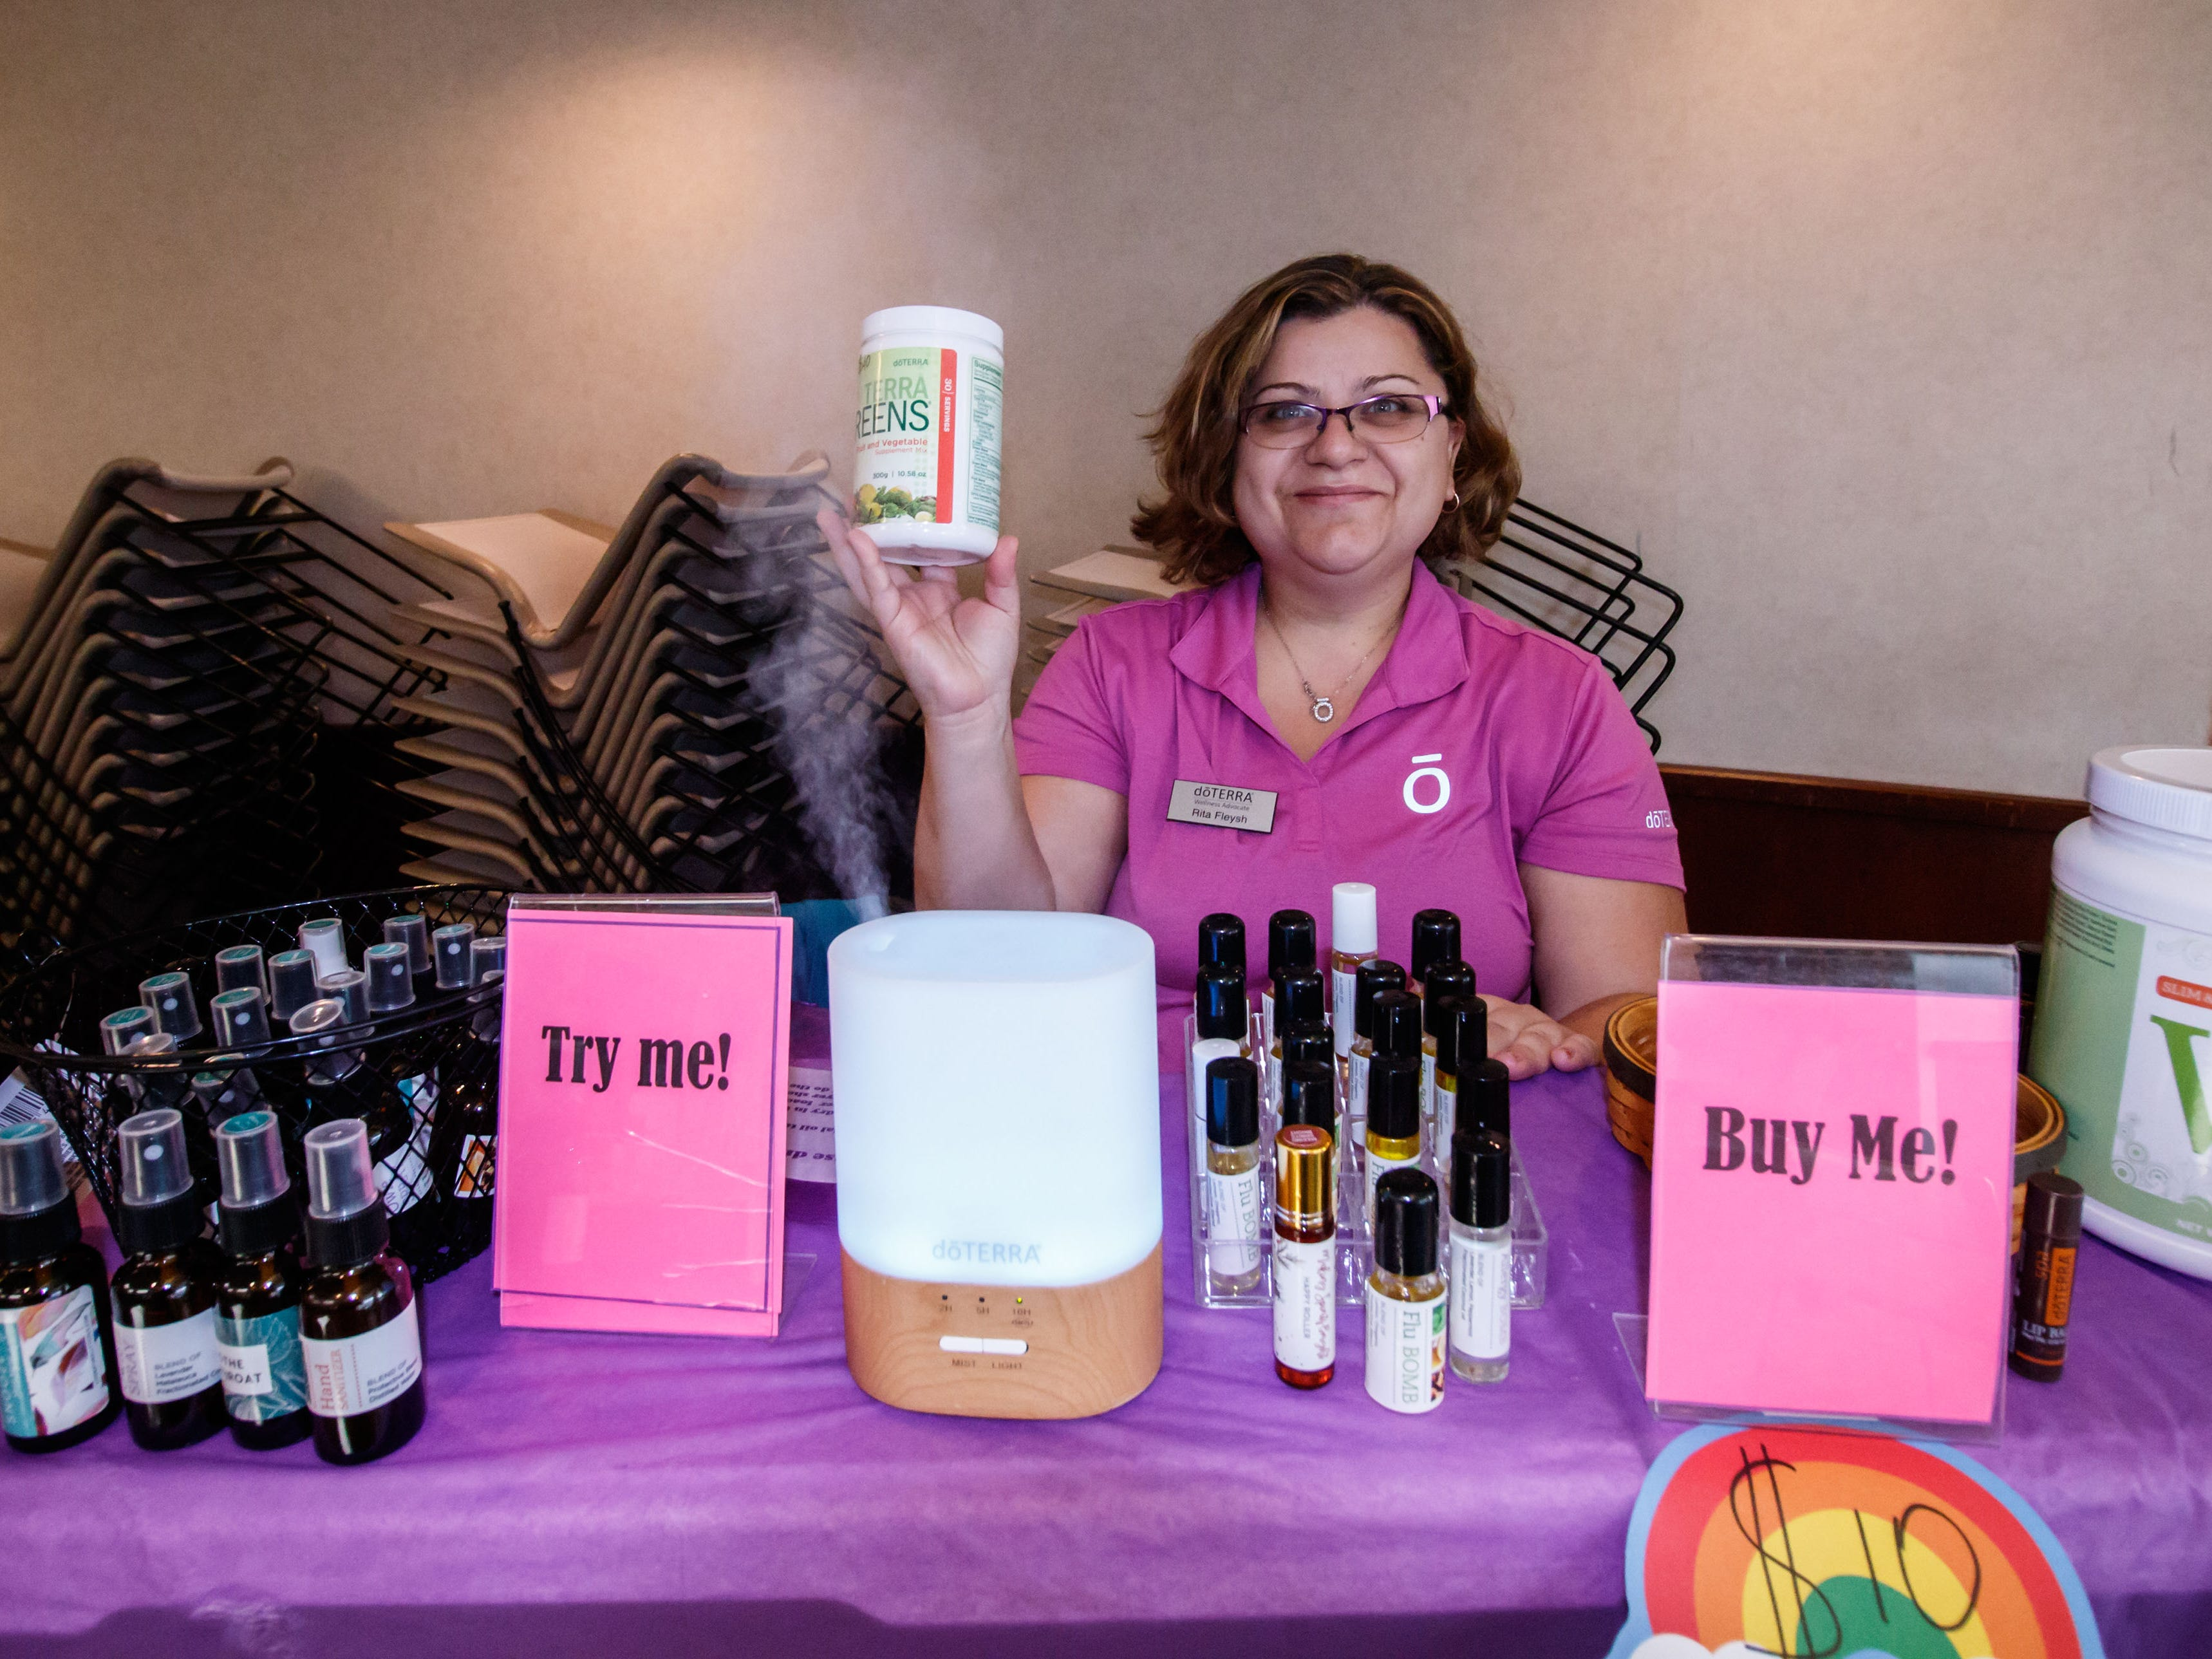 Rita Fleysh of doTerra GPTG Essential Oils in Menomonee Falls offers a variety of products during the 2018 Holiday Bazaar at the Menomonee Falls Library on Saturday, Nov. 3.